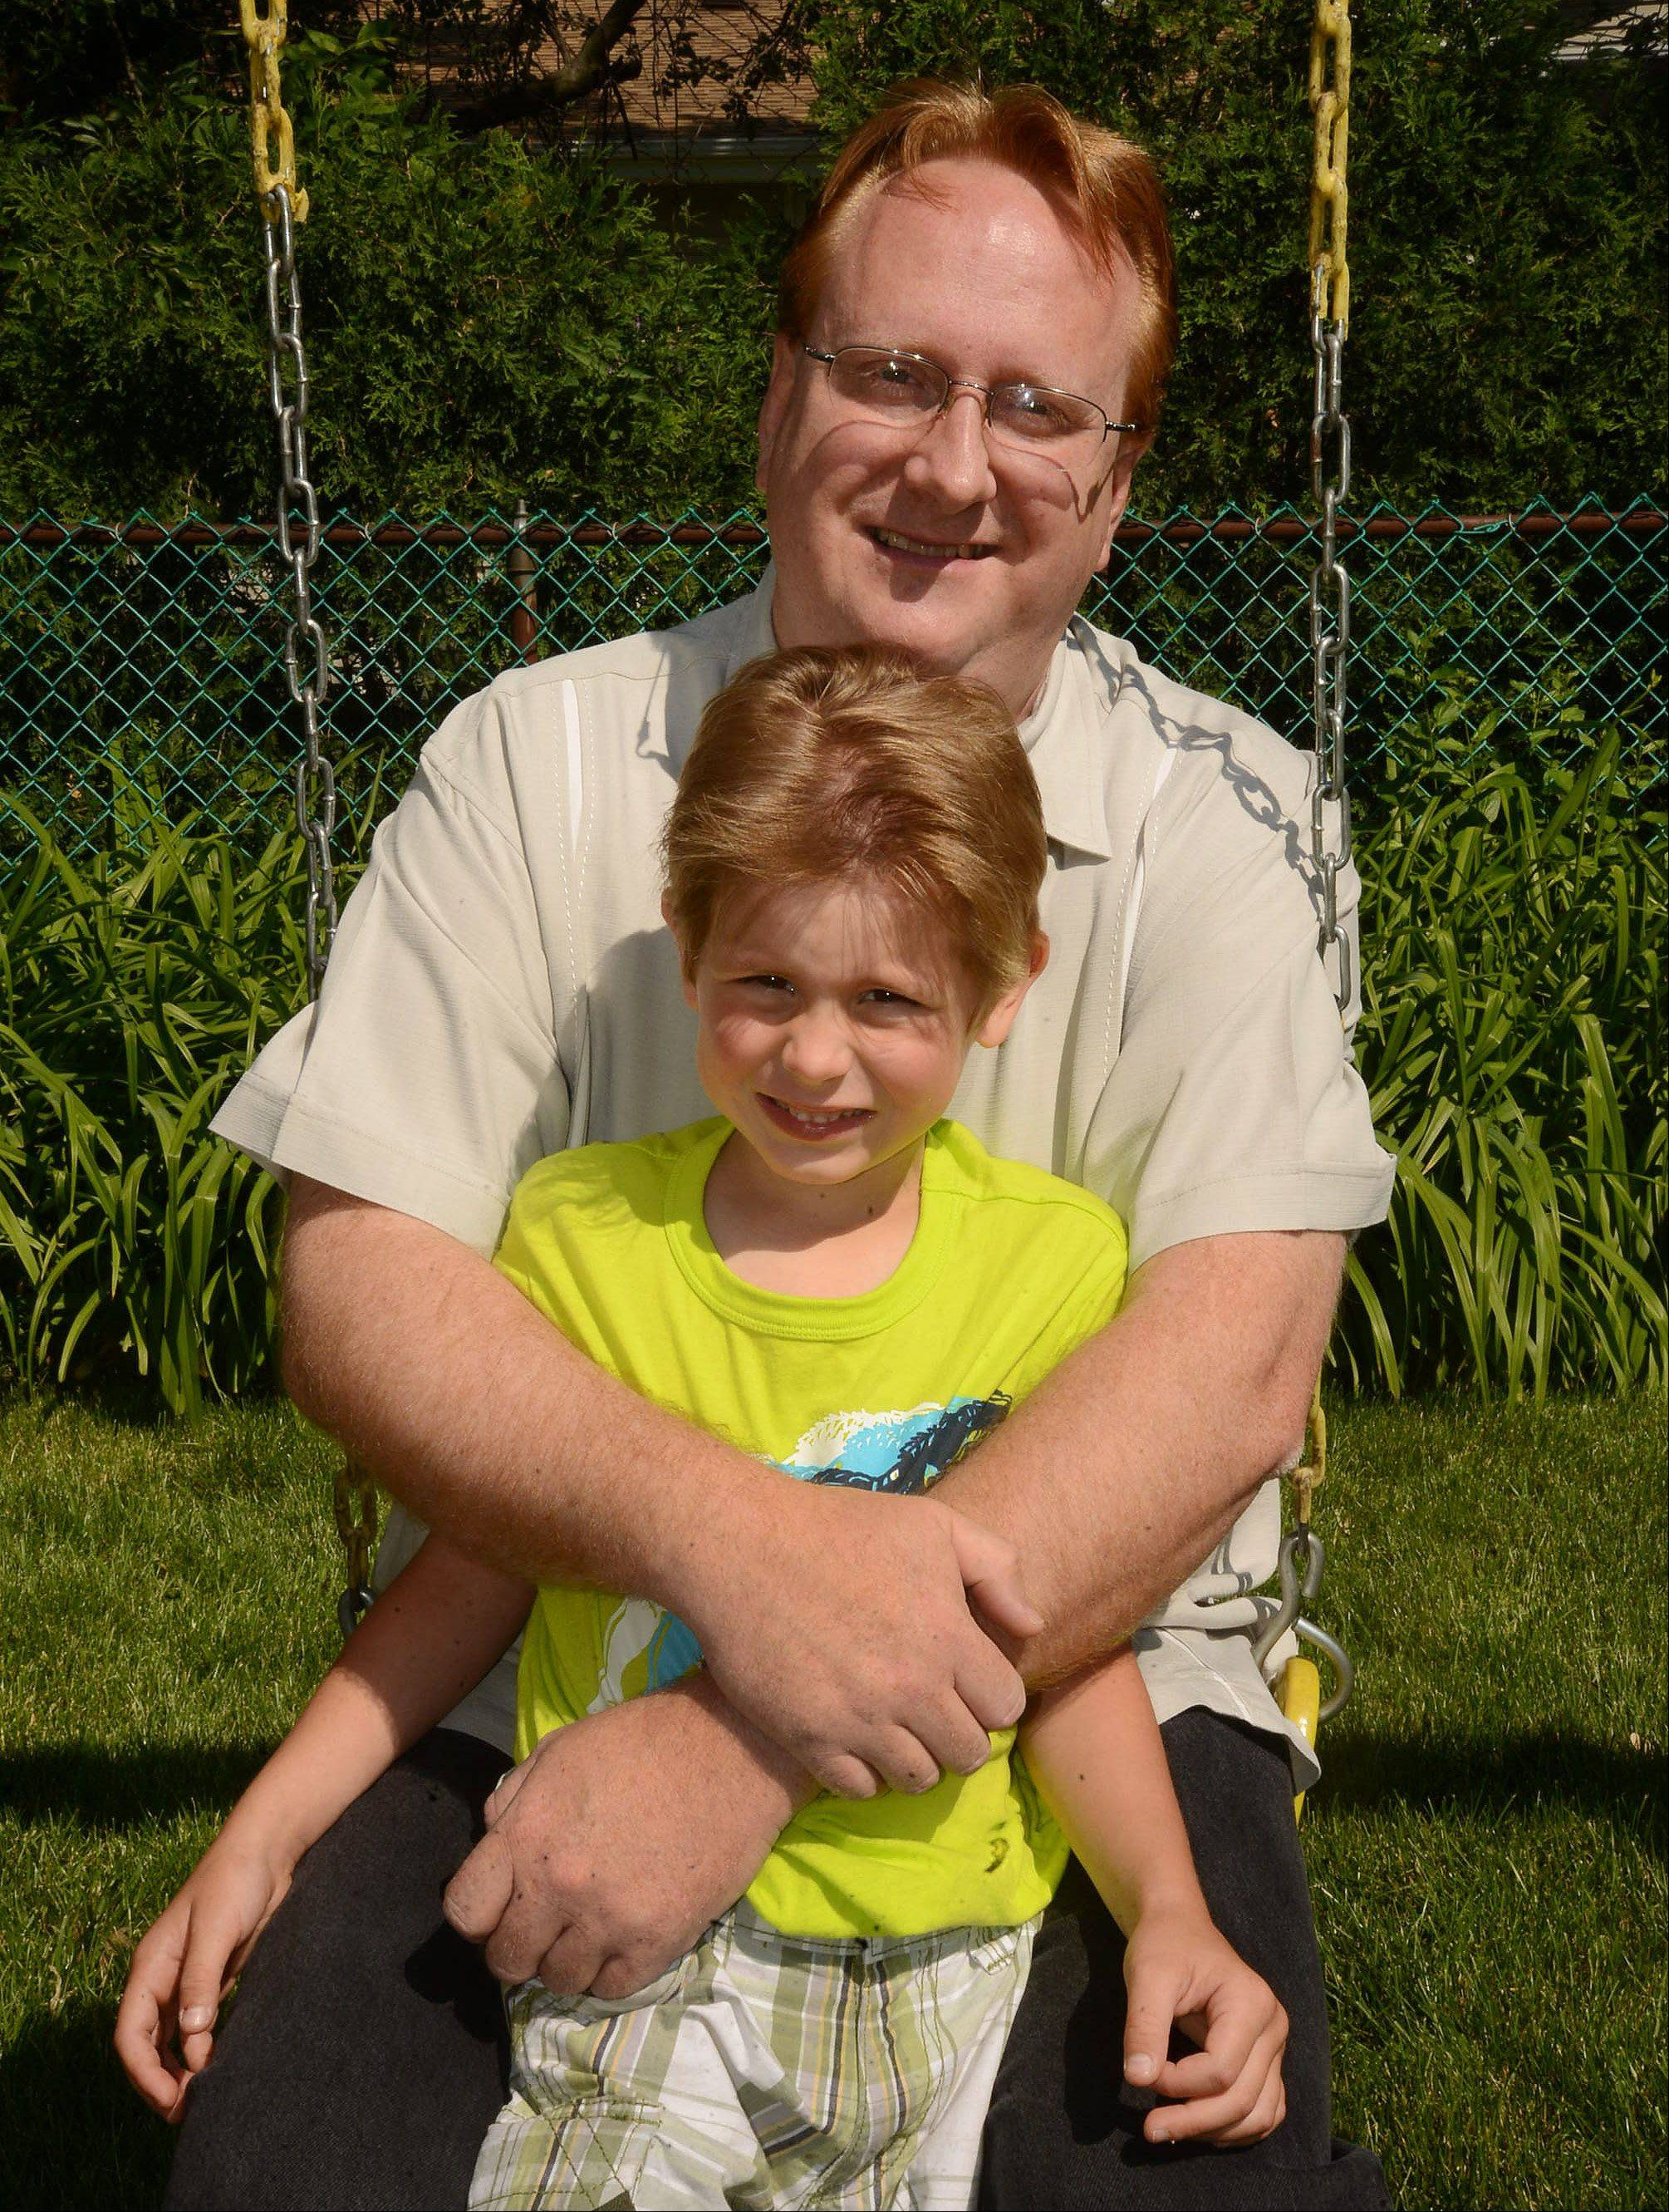 Enjoying a moment on the backyard playset with his son, Anthony, Richard Say of Schaumburg says all the hurdles that came before he and his wife, Tambra, adopted the boy from Russia give him a deep appreciation for the joys of fatherhood.